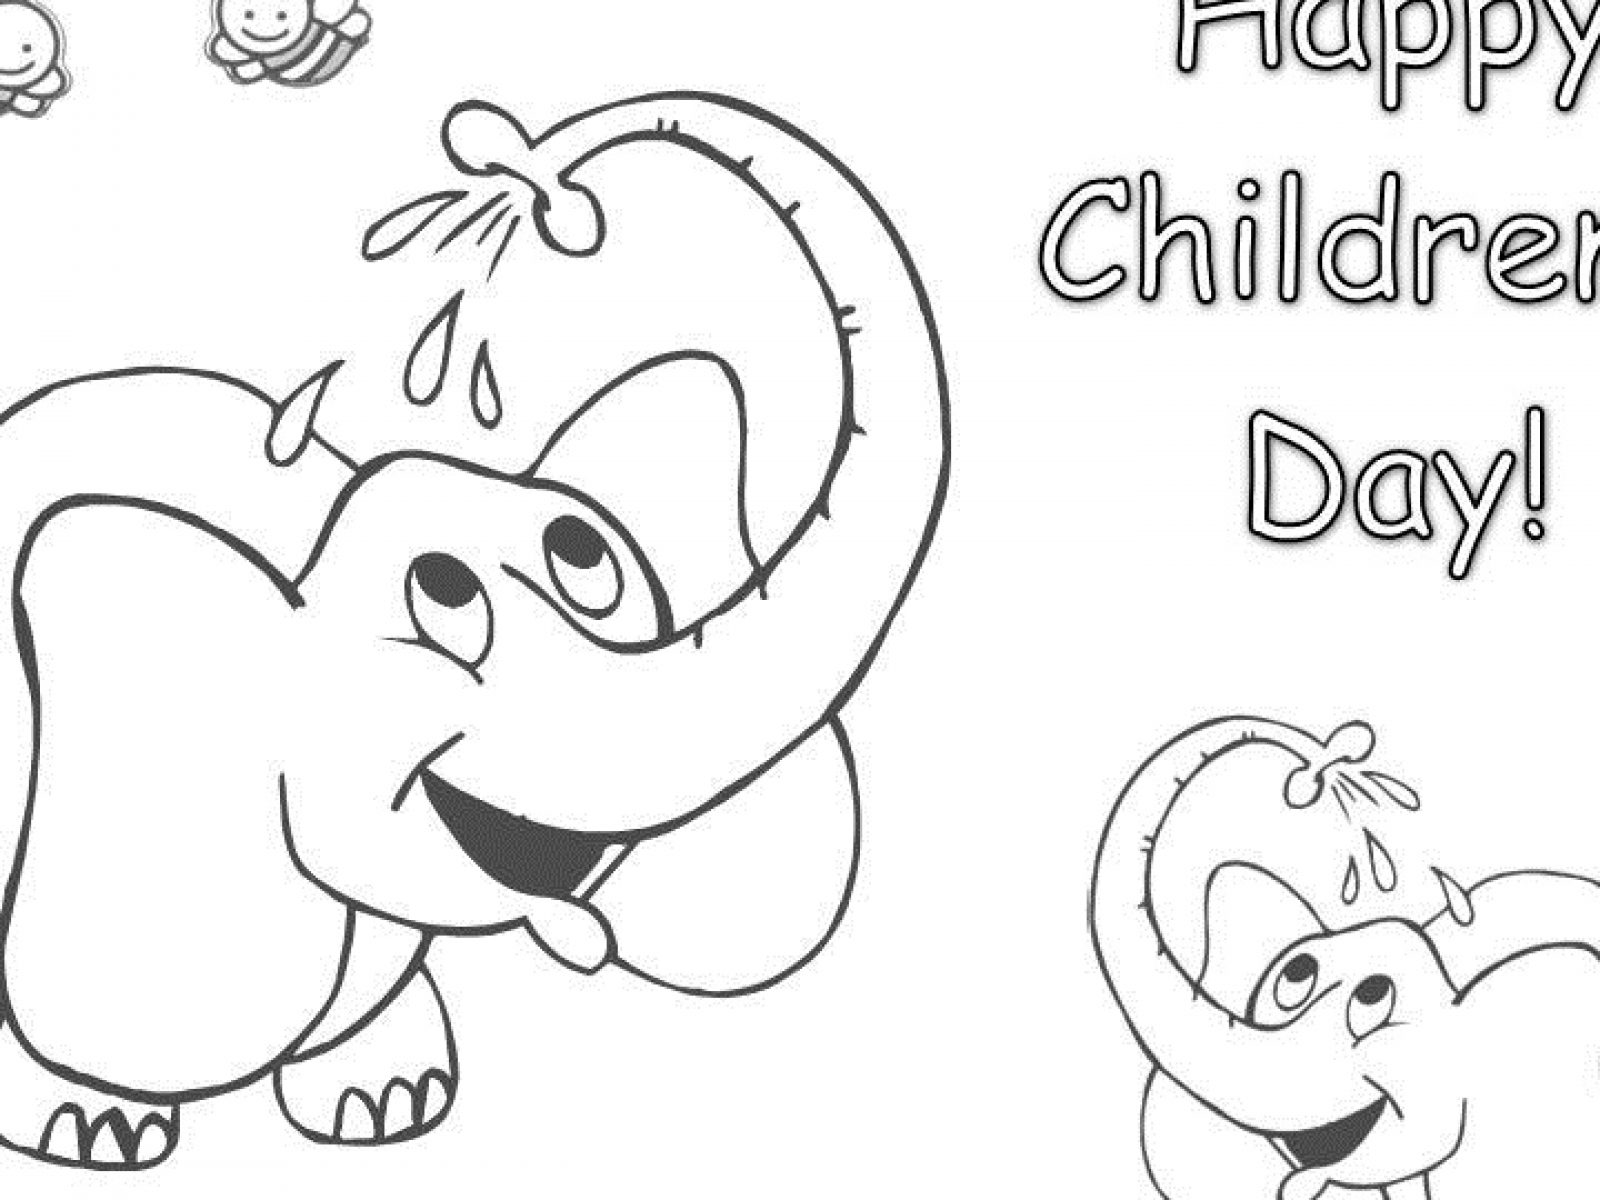 1600x1200 Veterans Day Preschool Coloring Pages Mothers Memorial Childrens